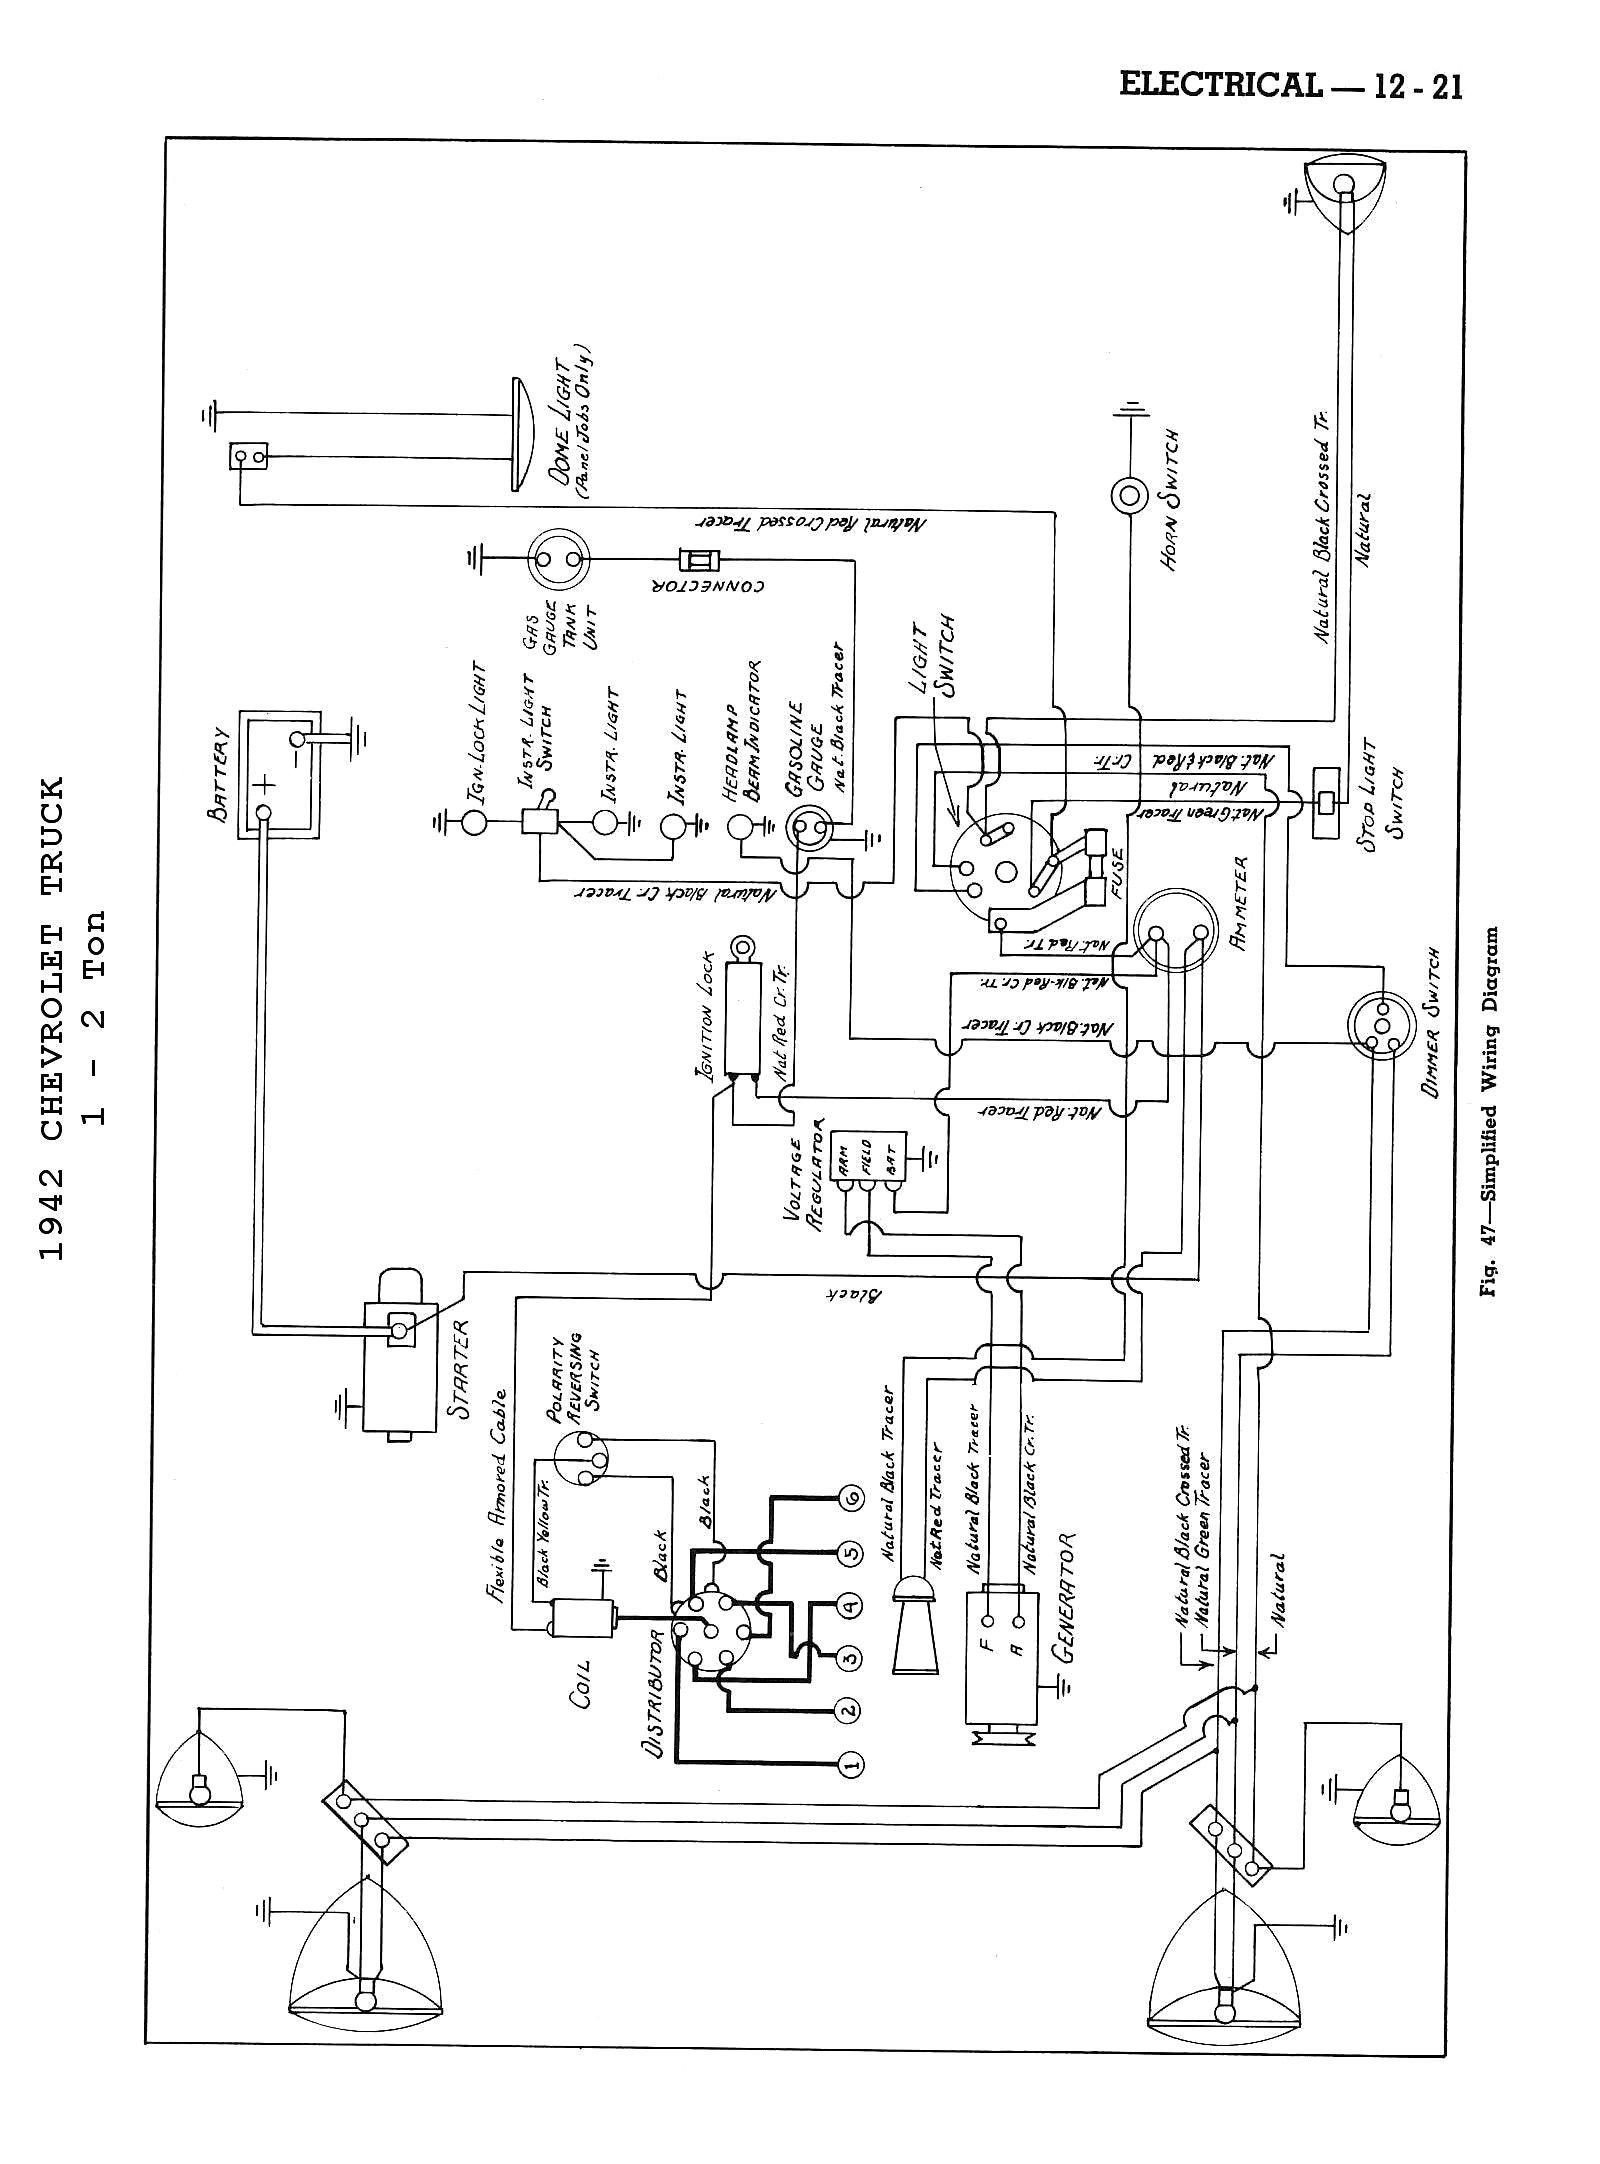 Suburban Water Heater Wiring Diagram Thermostat wiring